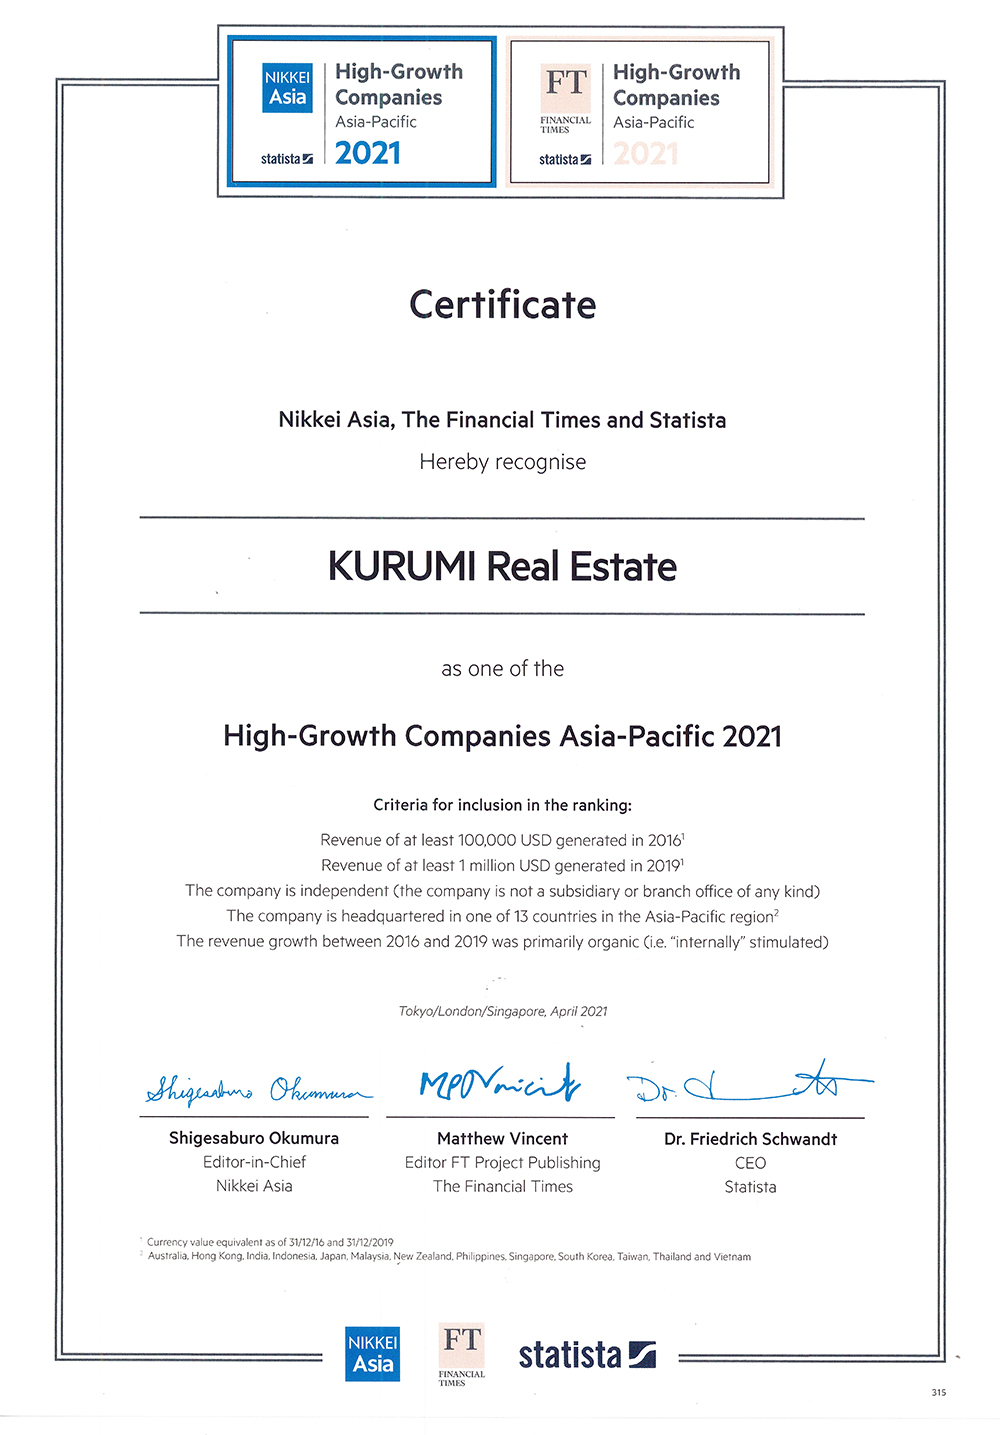 High-Growth-Companies-Asia-Pacific-2021_certificate